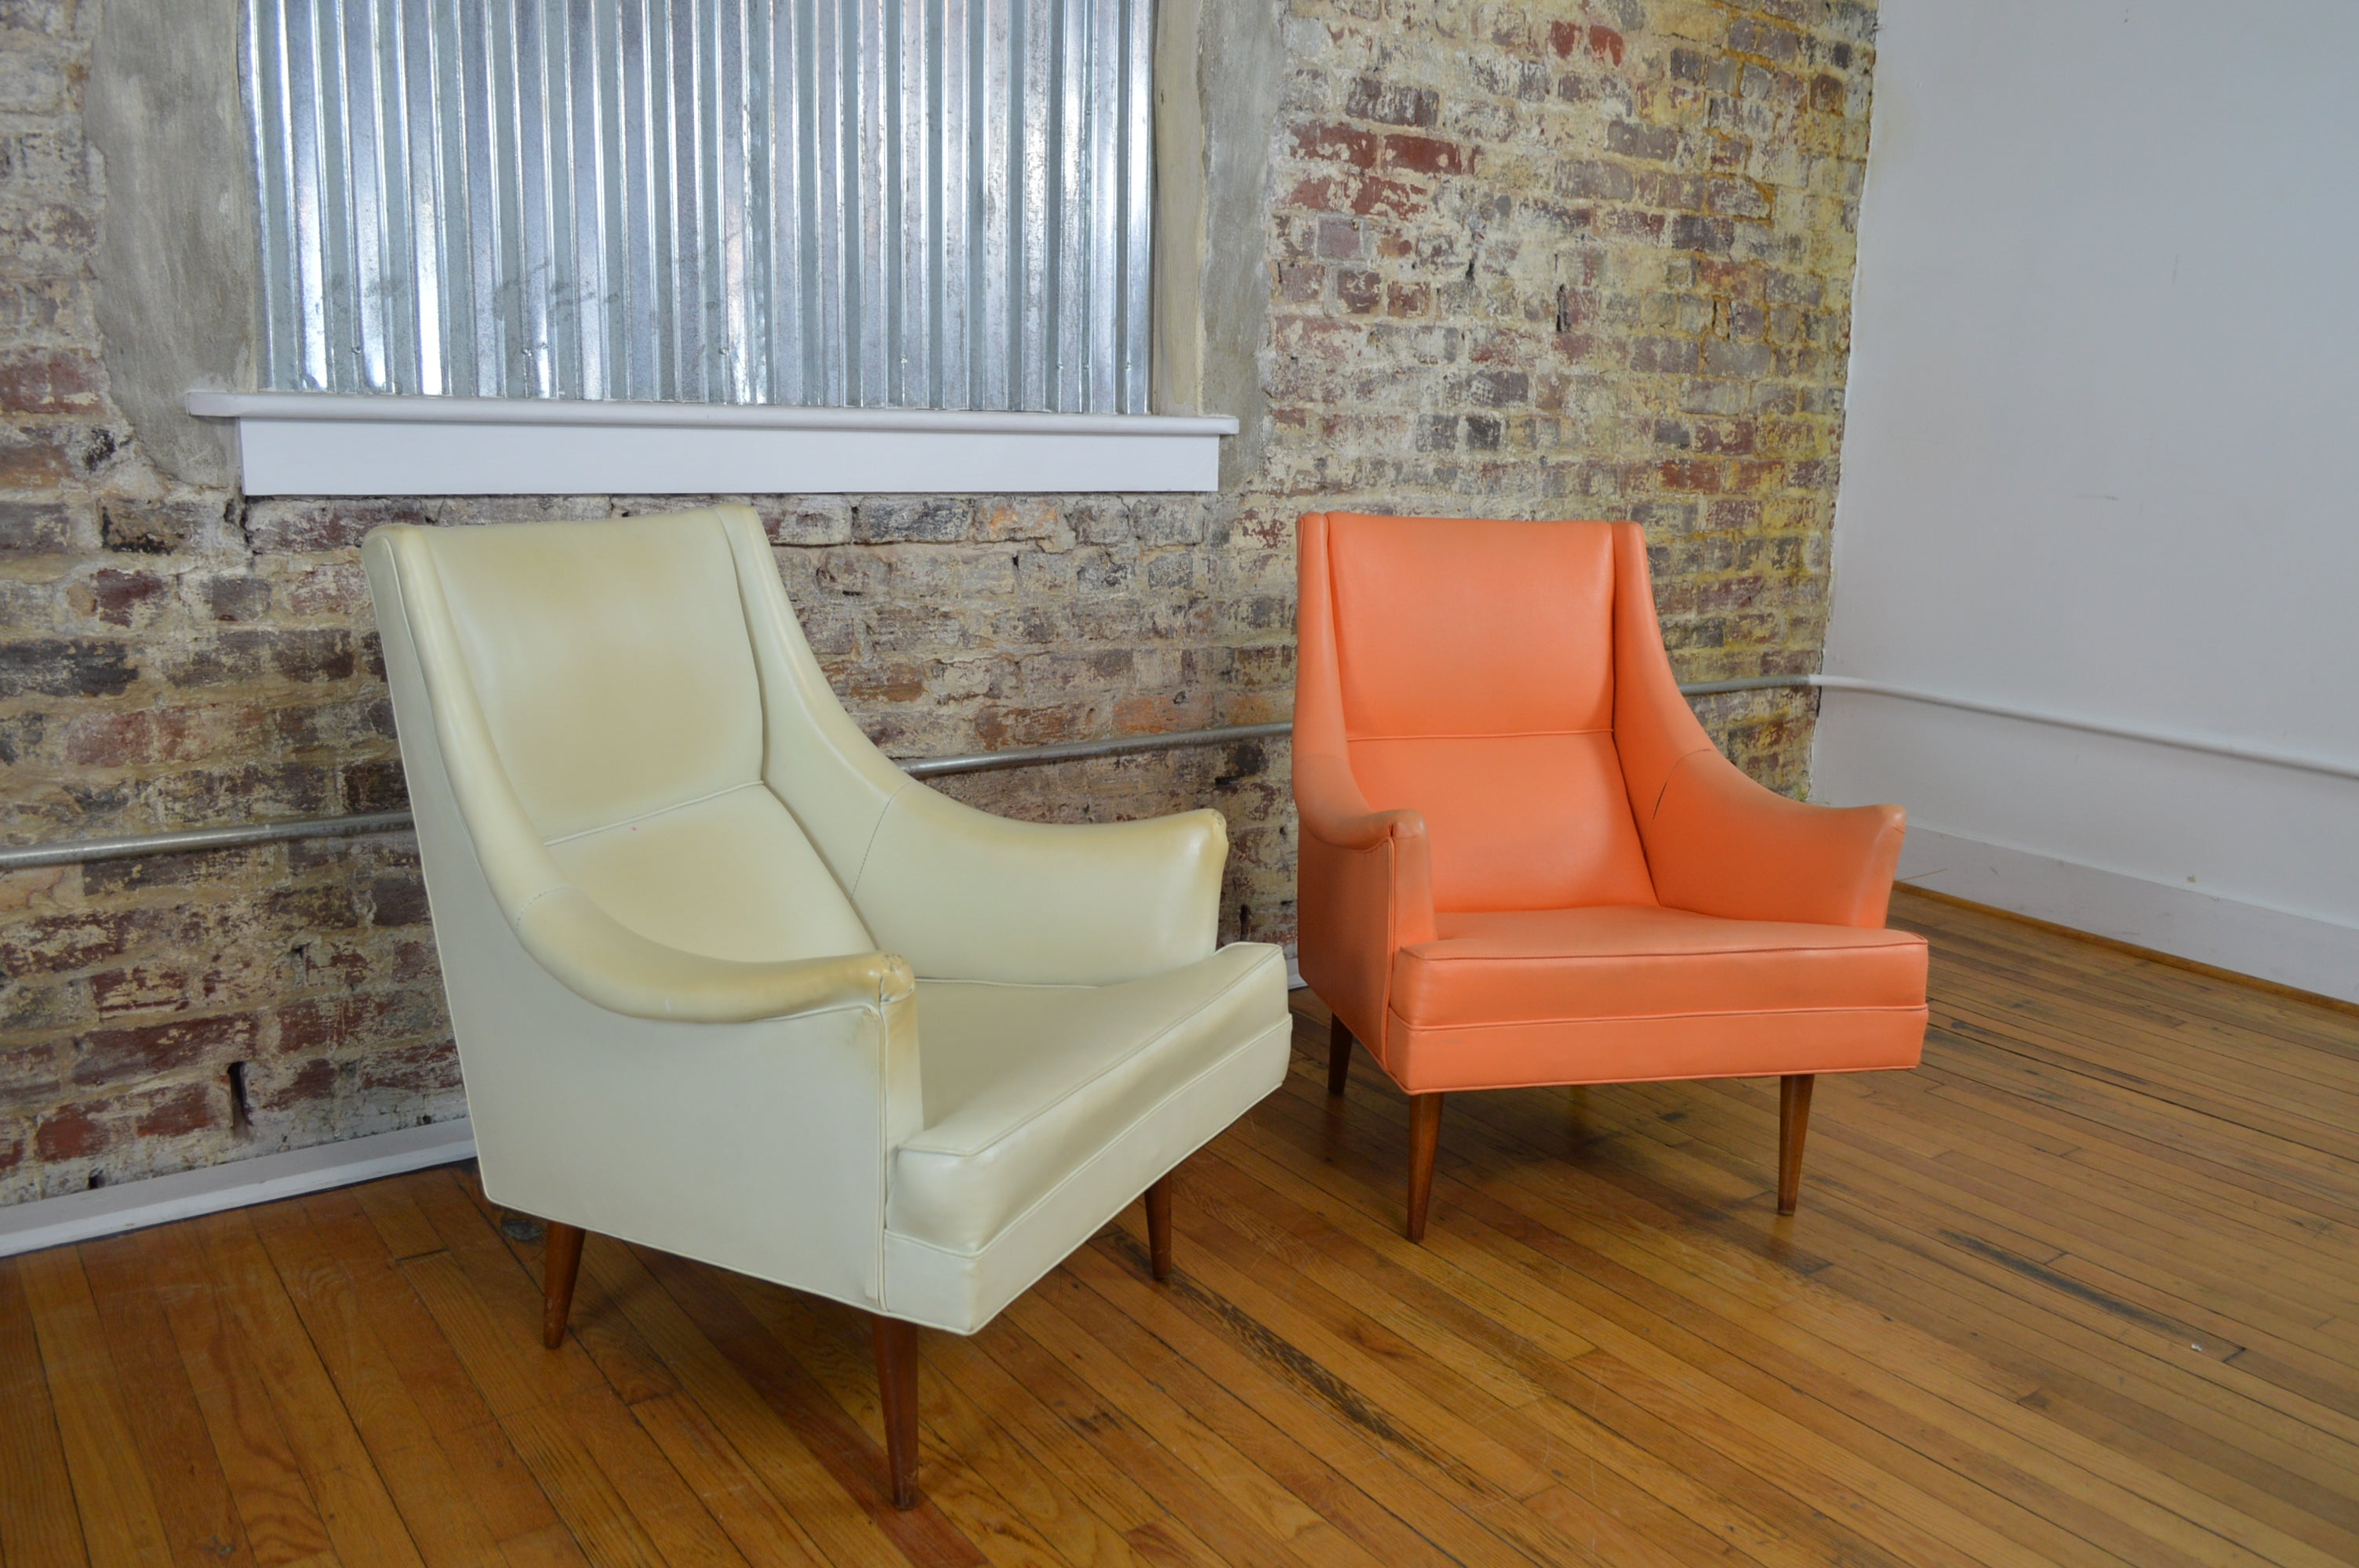 Milo Baughman For James Inc Mid Century Modern Lounge Chairs